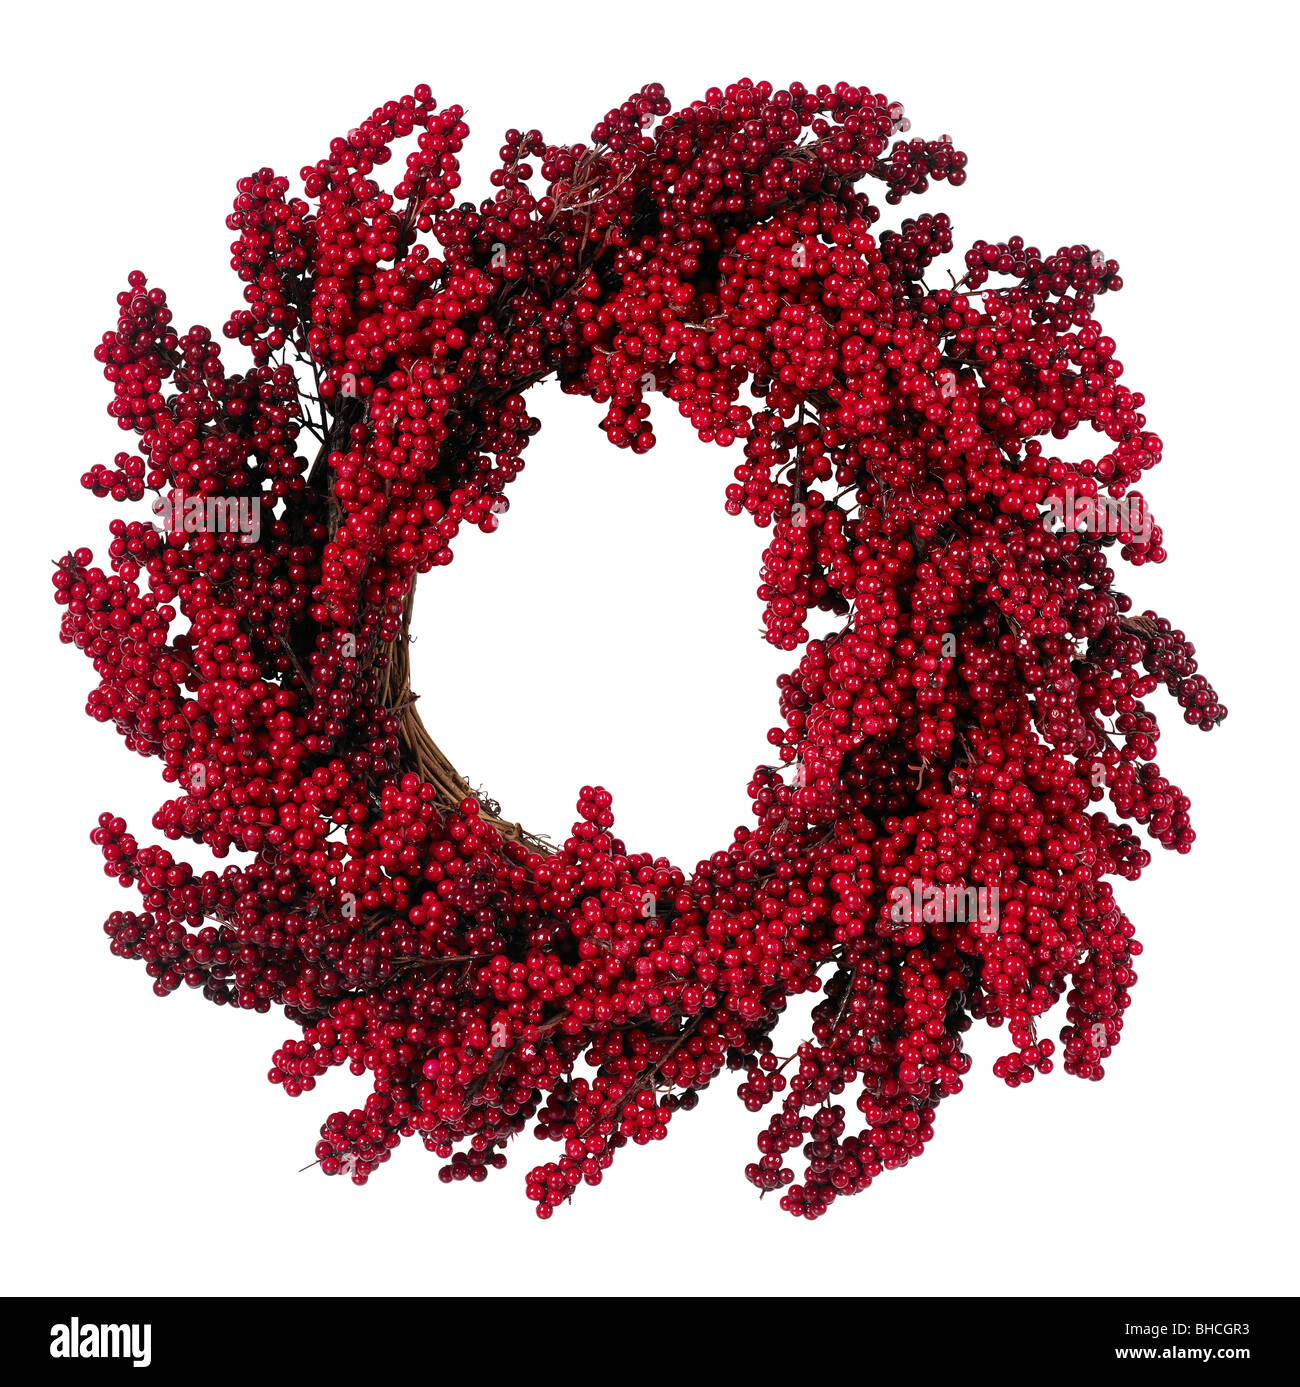 Red Christmas ornament holly berries wreath - Stock Image